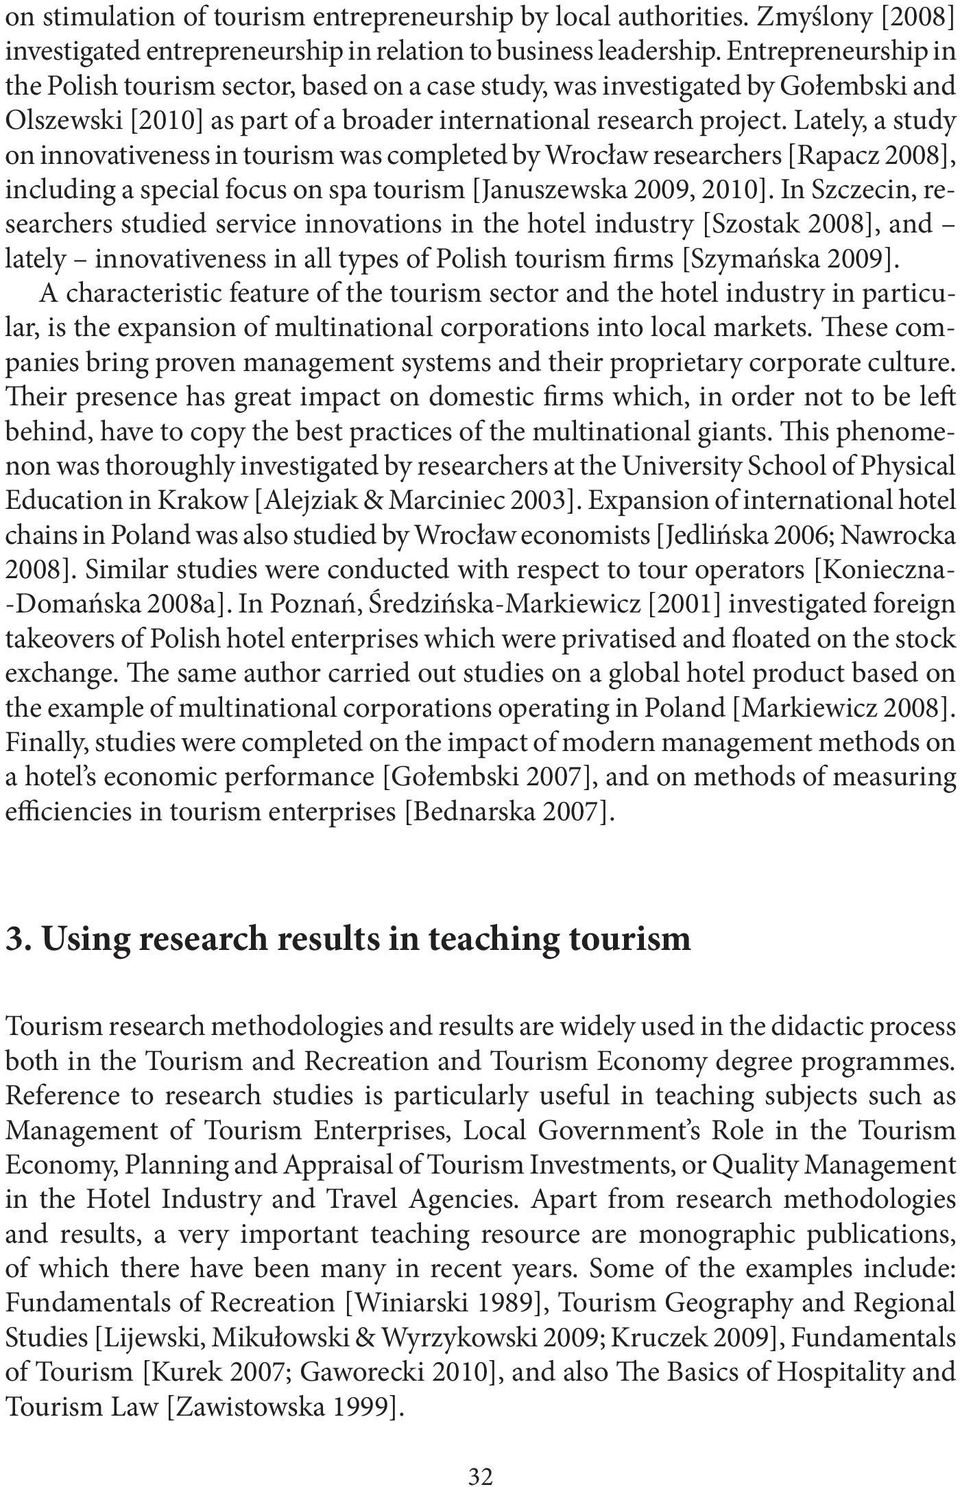 Lately, a study on innovativeness in tourism was completed by Wrocław researchers [Rapacz 2008], including a special focus on spa tourism [Januszewska 2009, 2010].